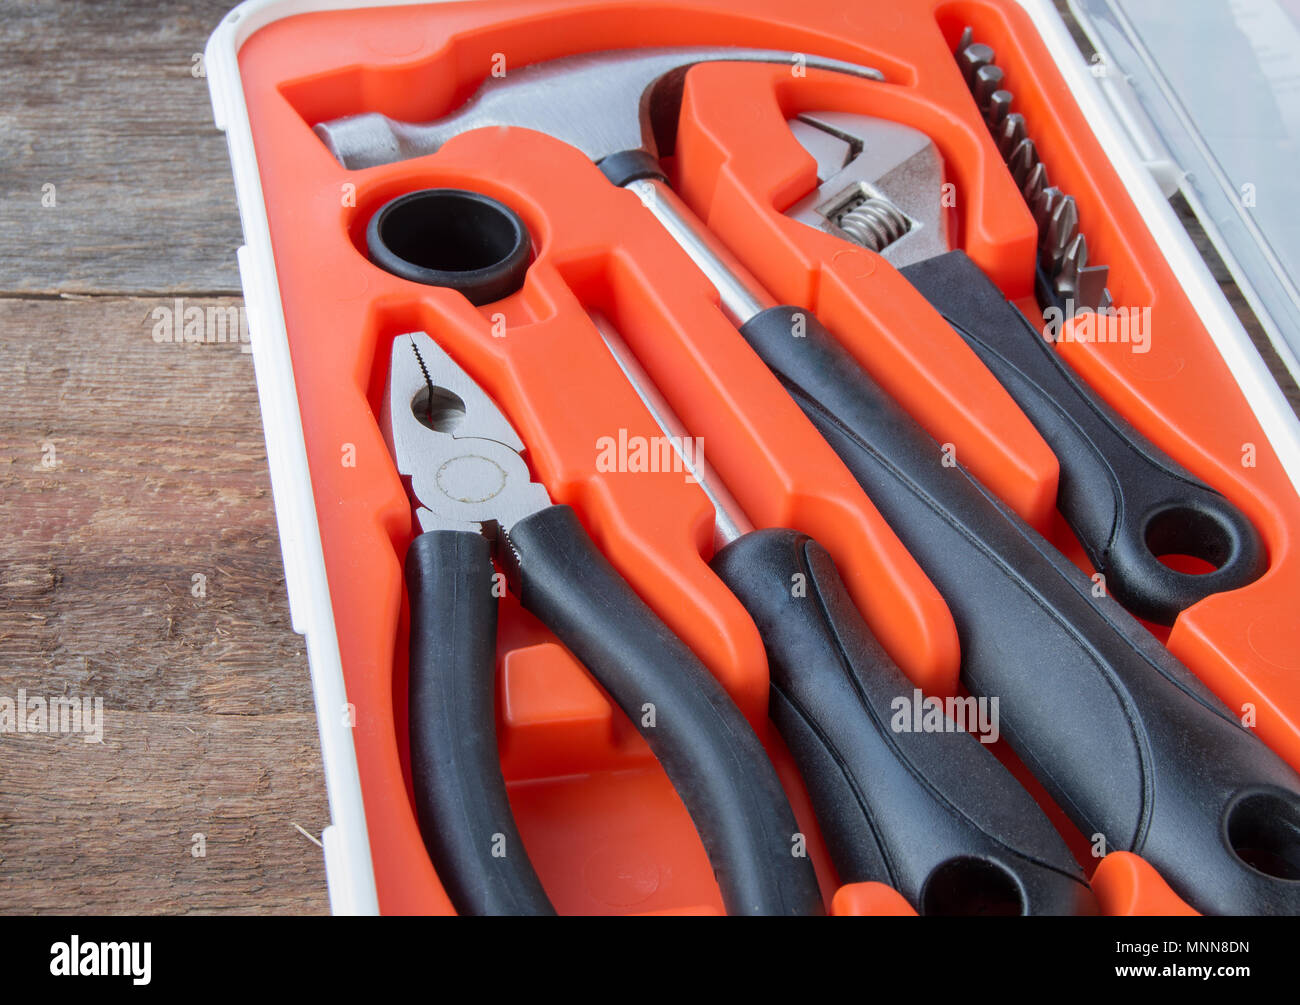 Tools set on old wooden Board with copy space - Stock Image